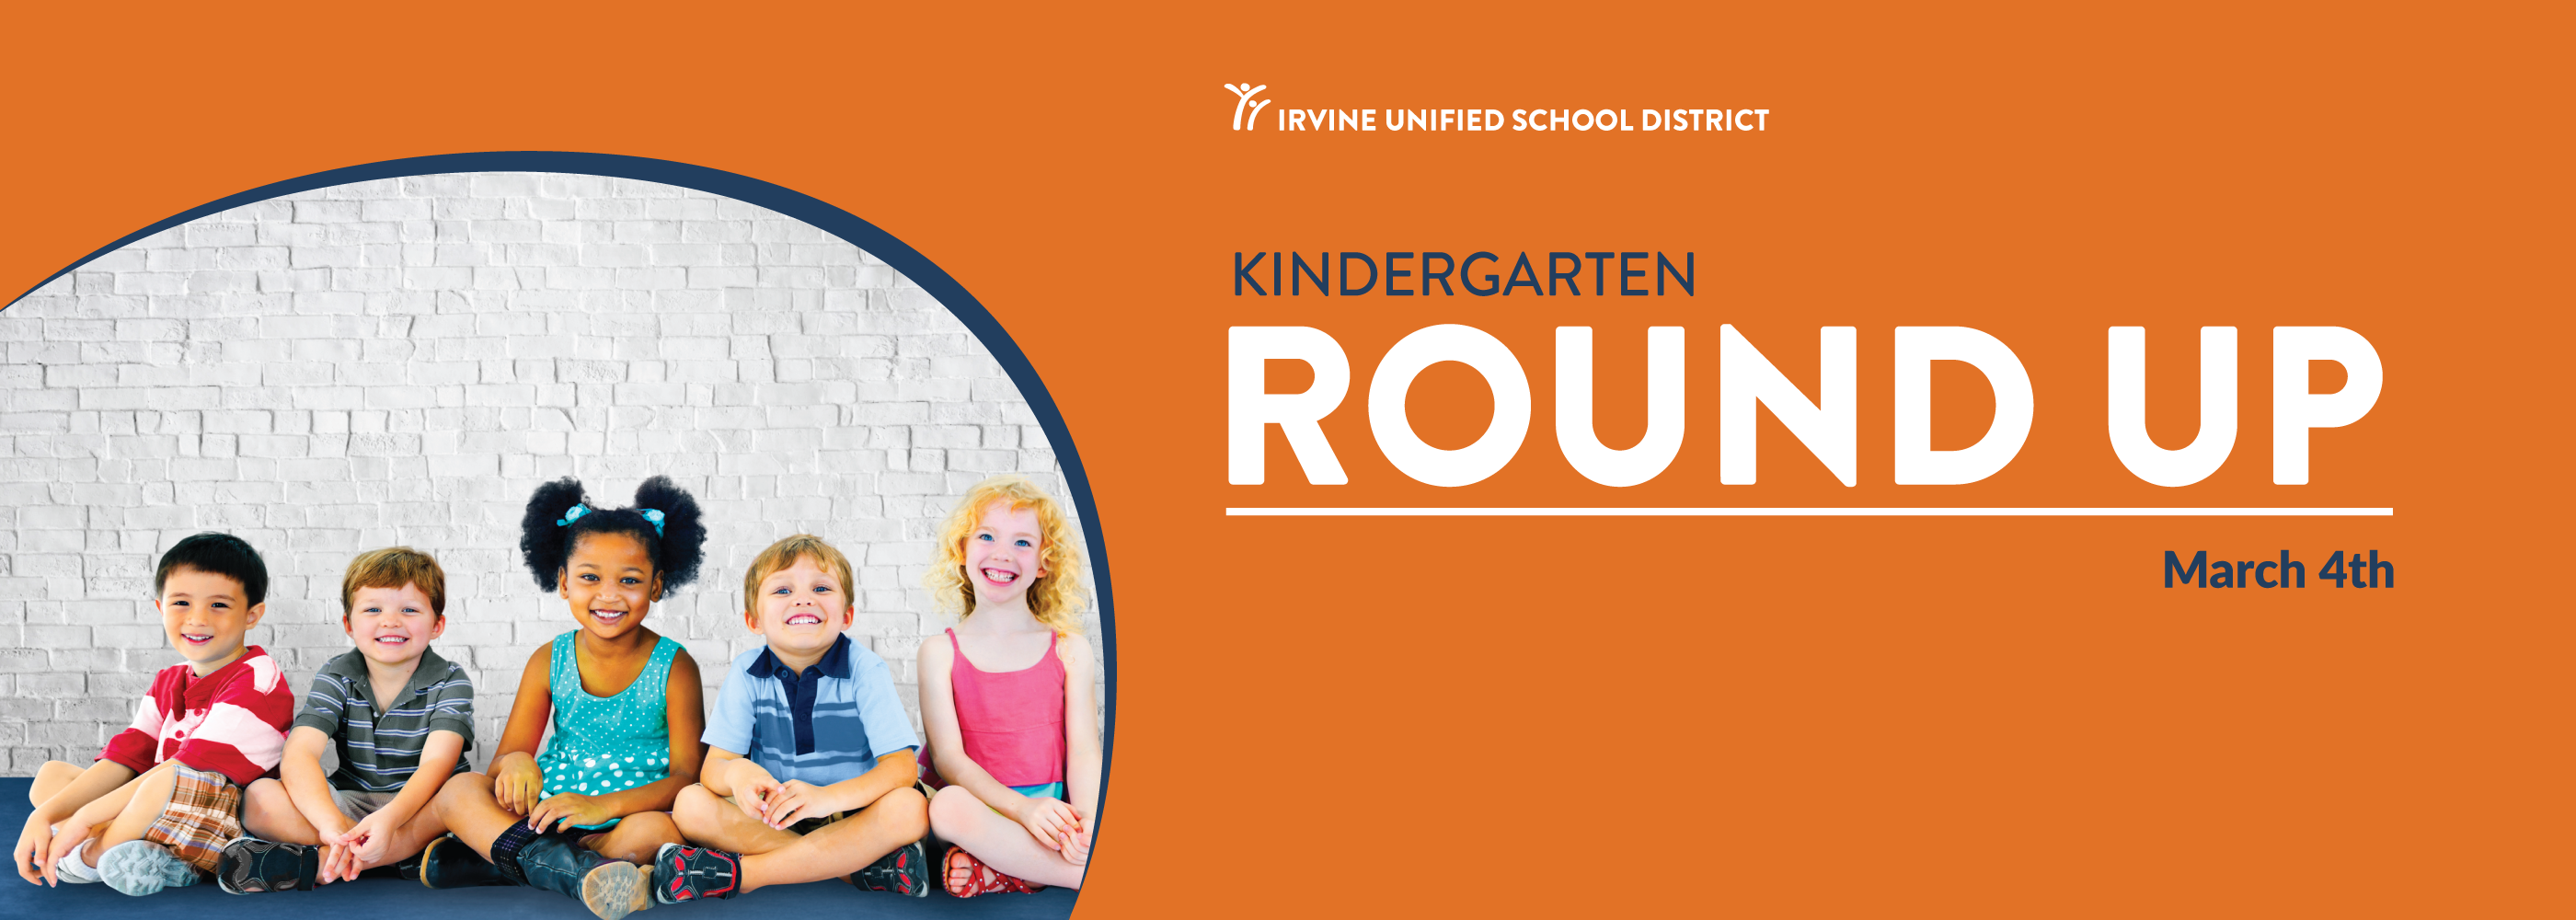 Kinder Round Up Picture